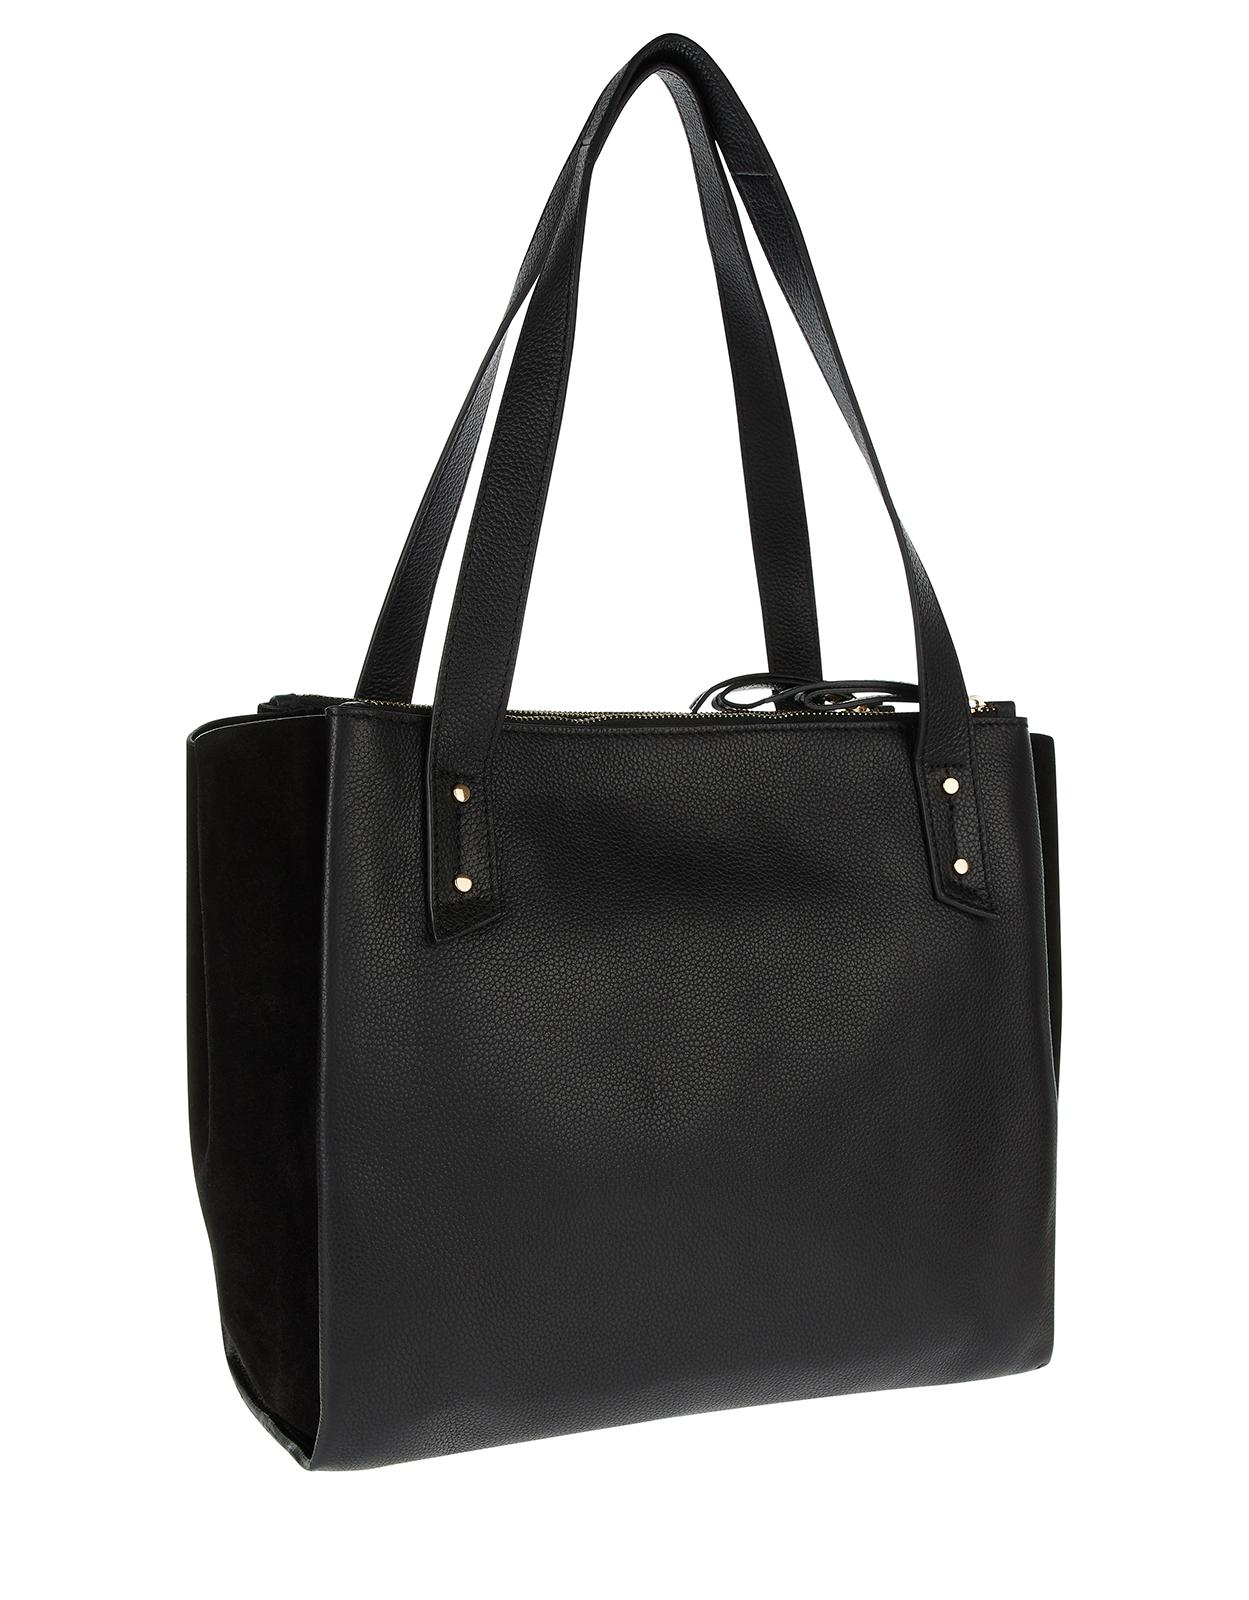 502ba1f33a Accessorize Drew Double Zip Leather Work Bag in Black - Lyst